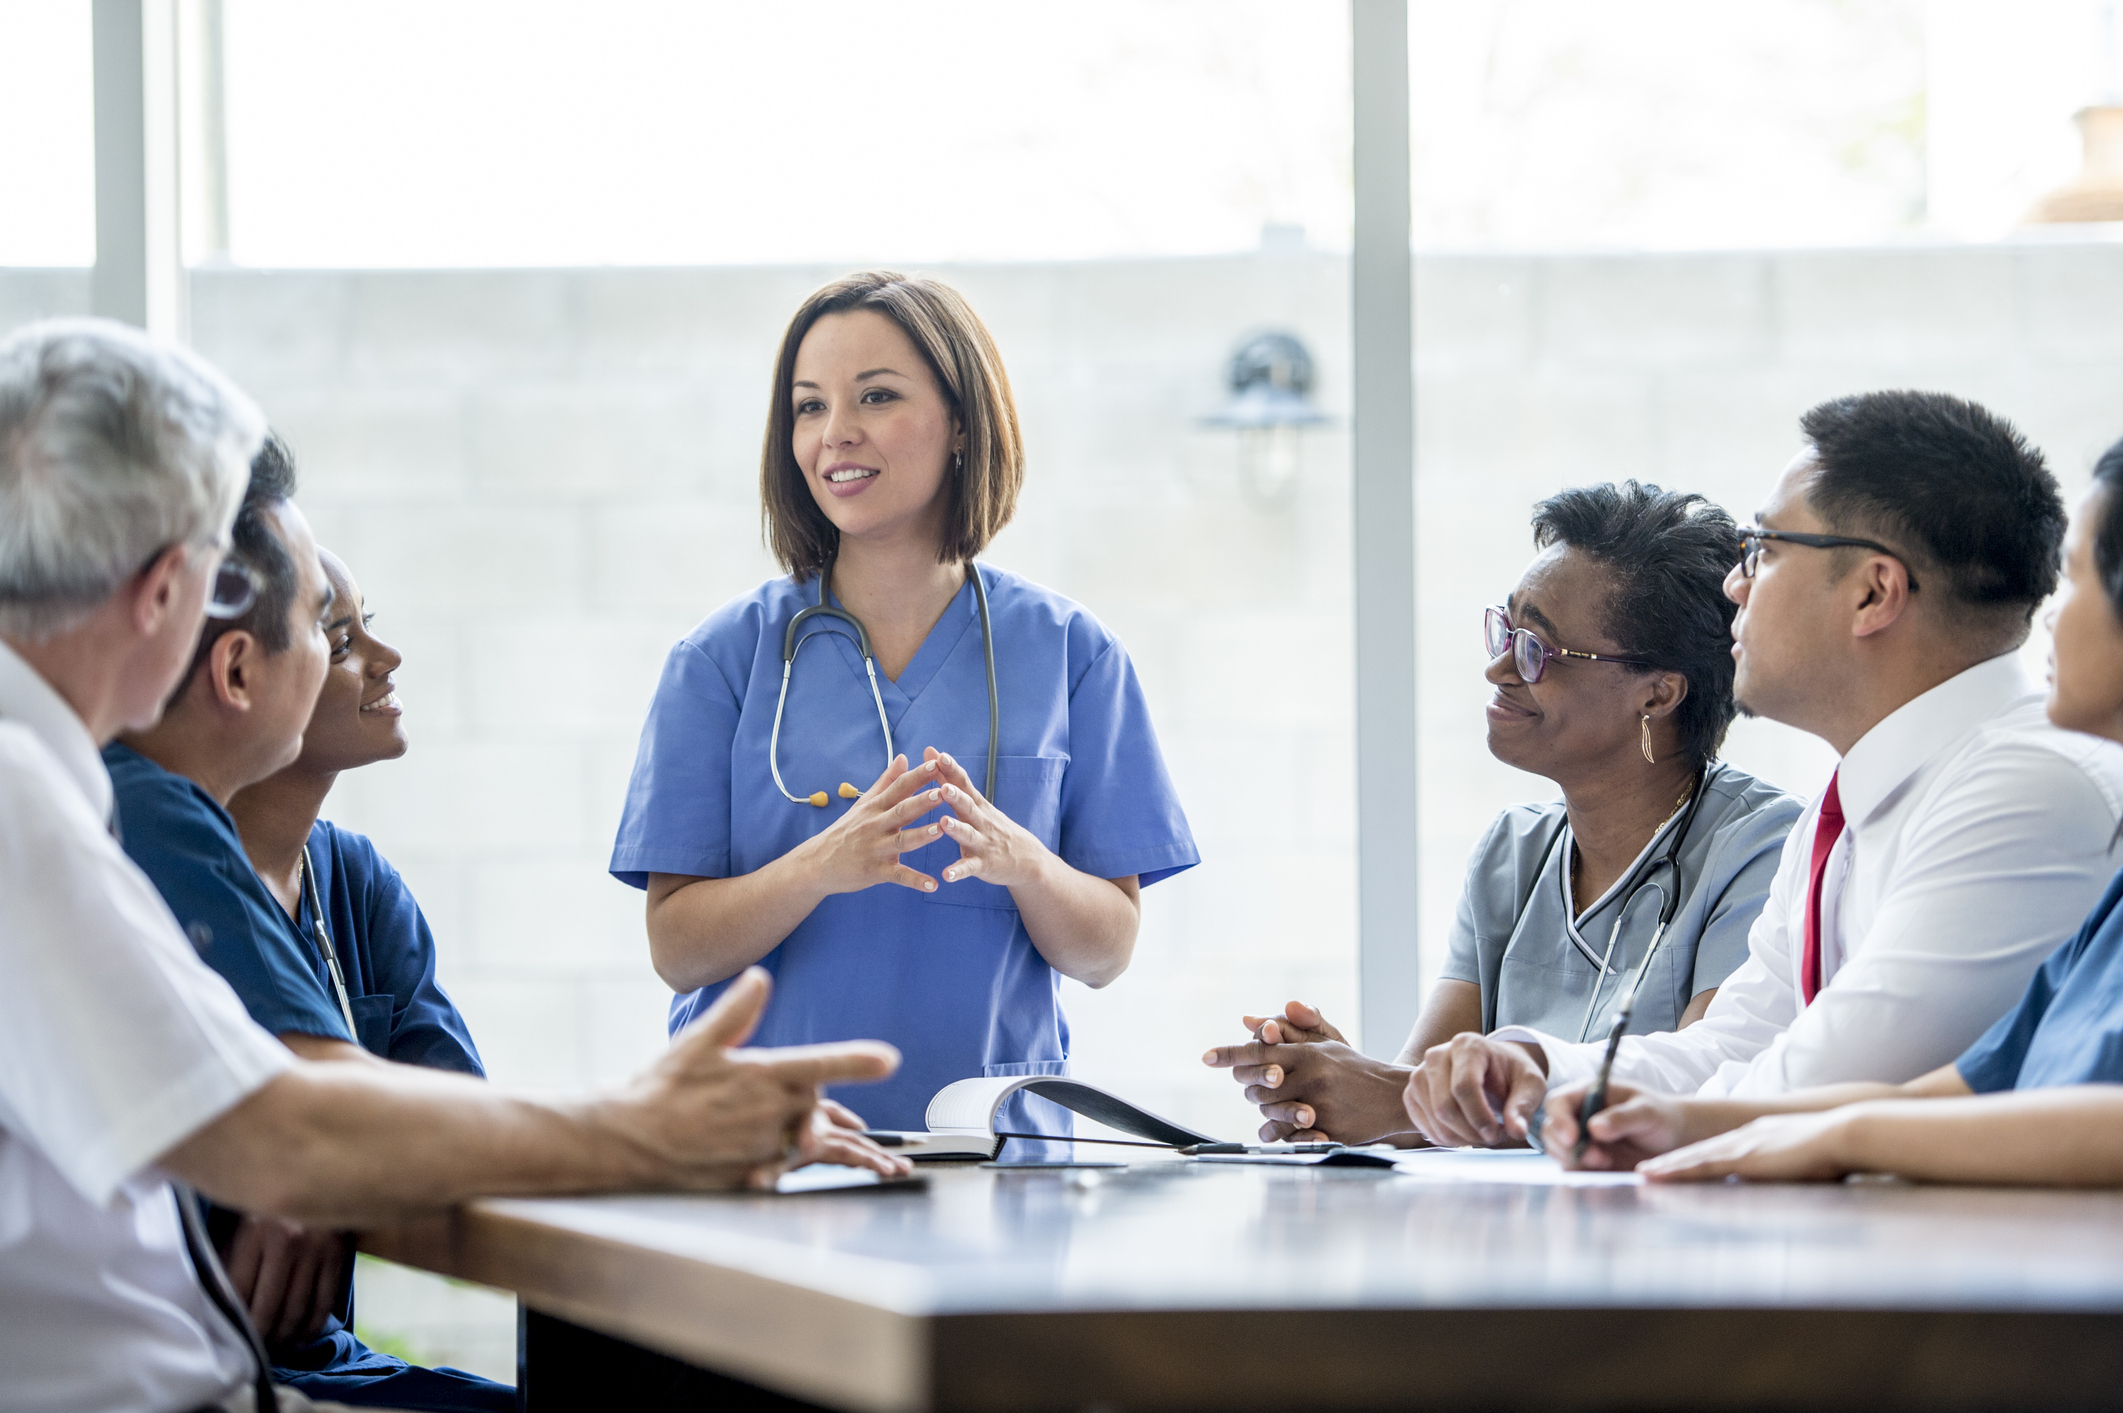 A positive patient experience requires that all practitioners work together